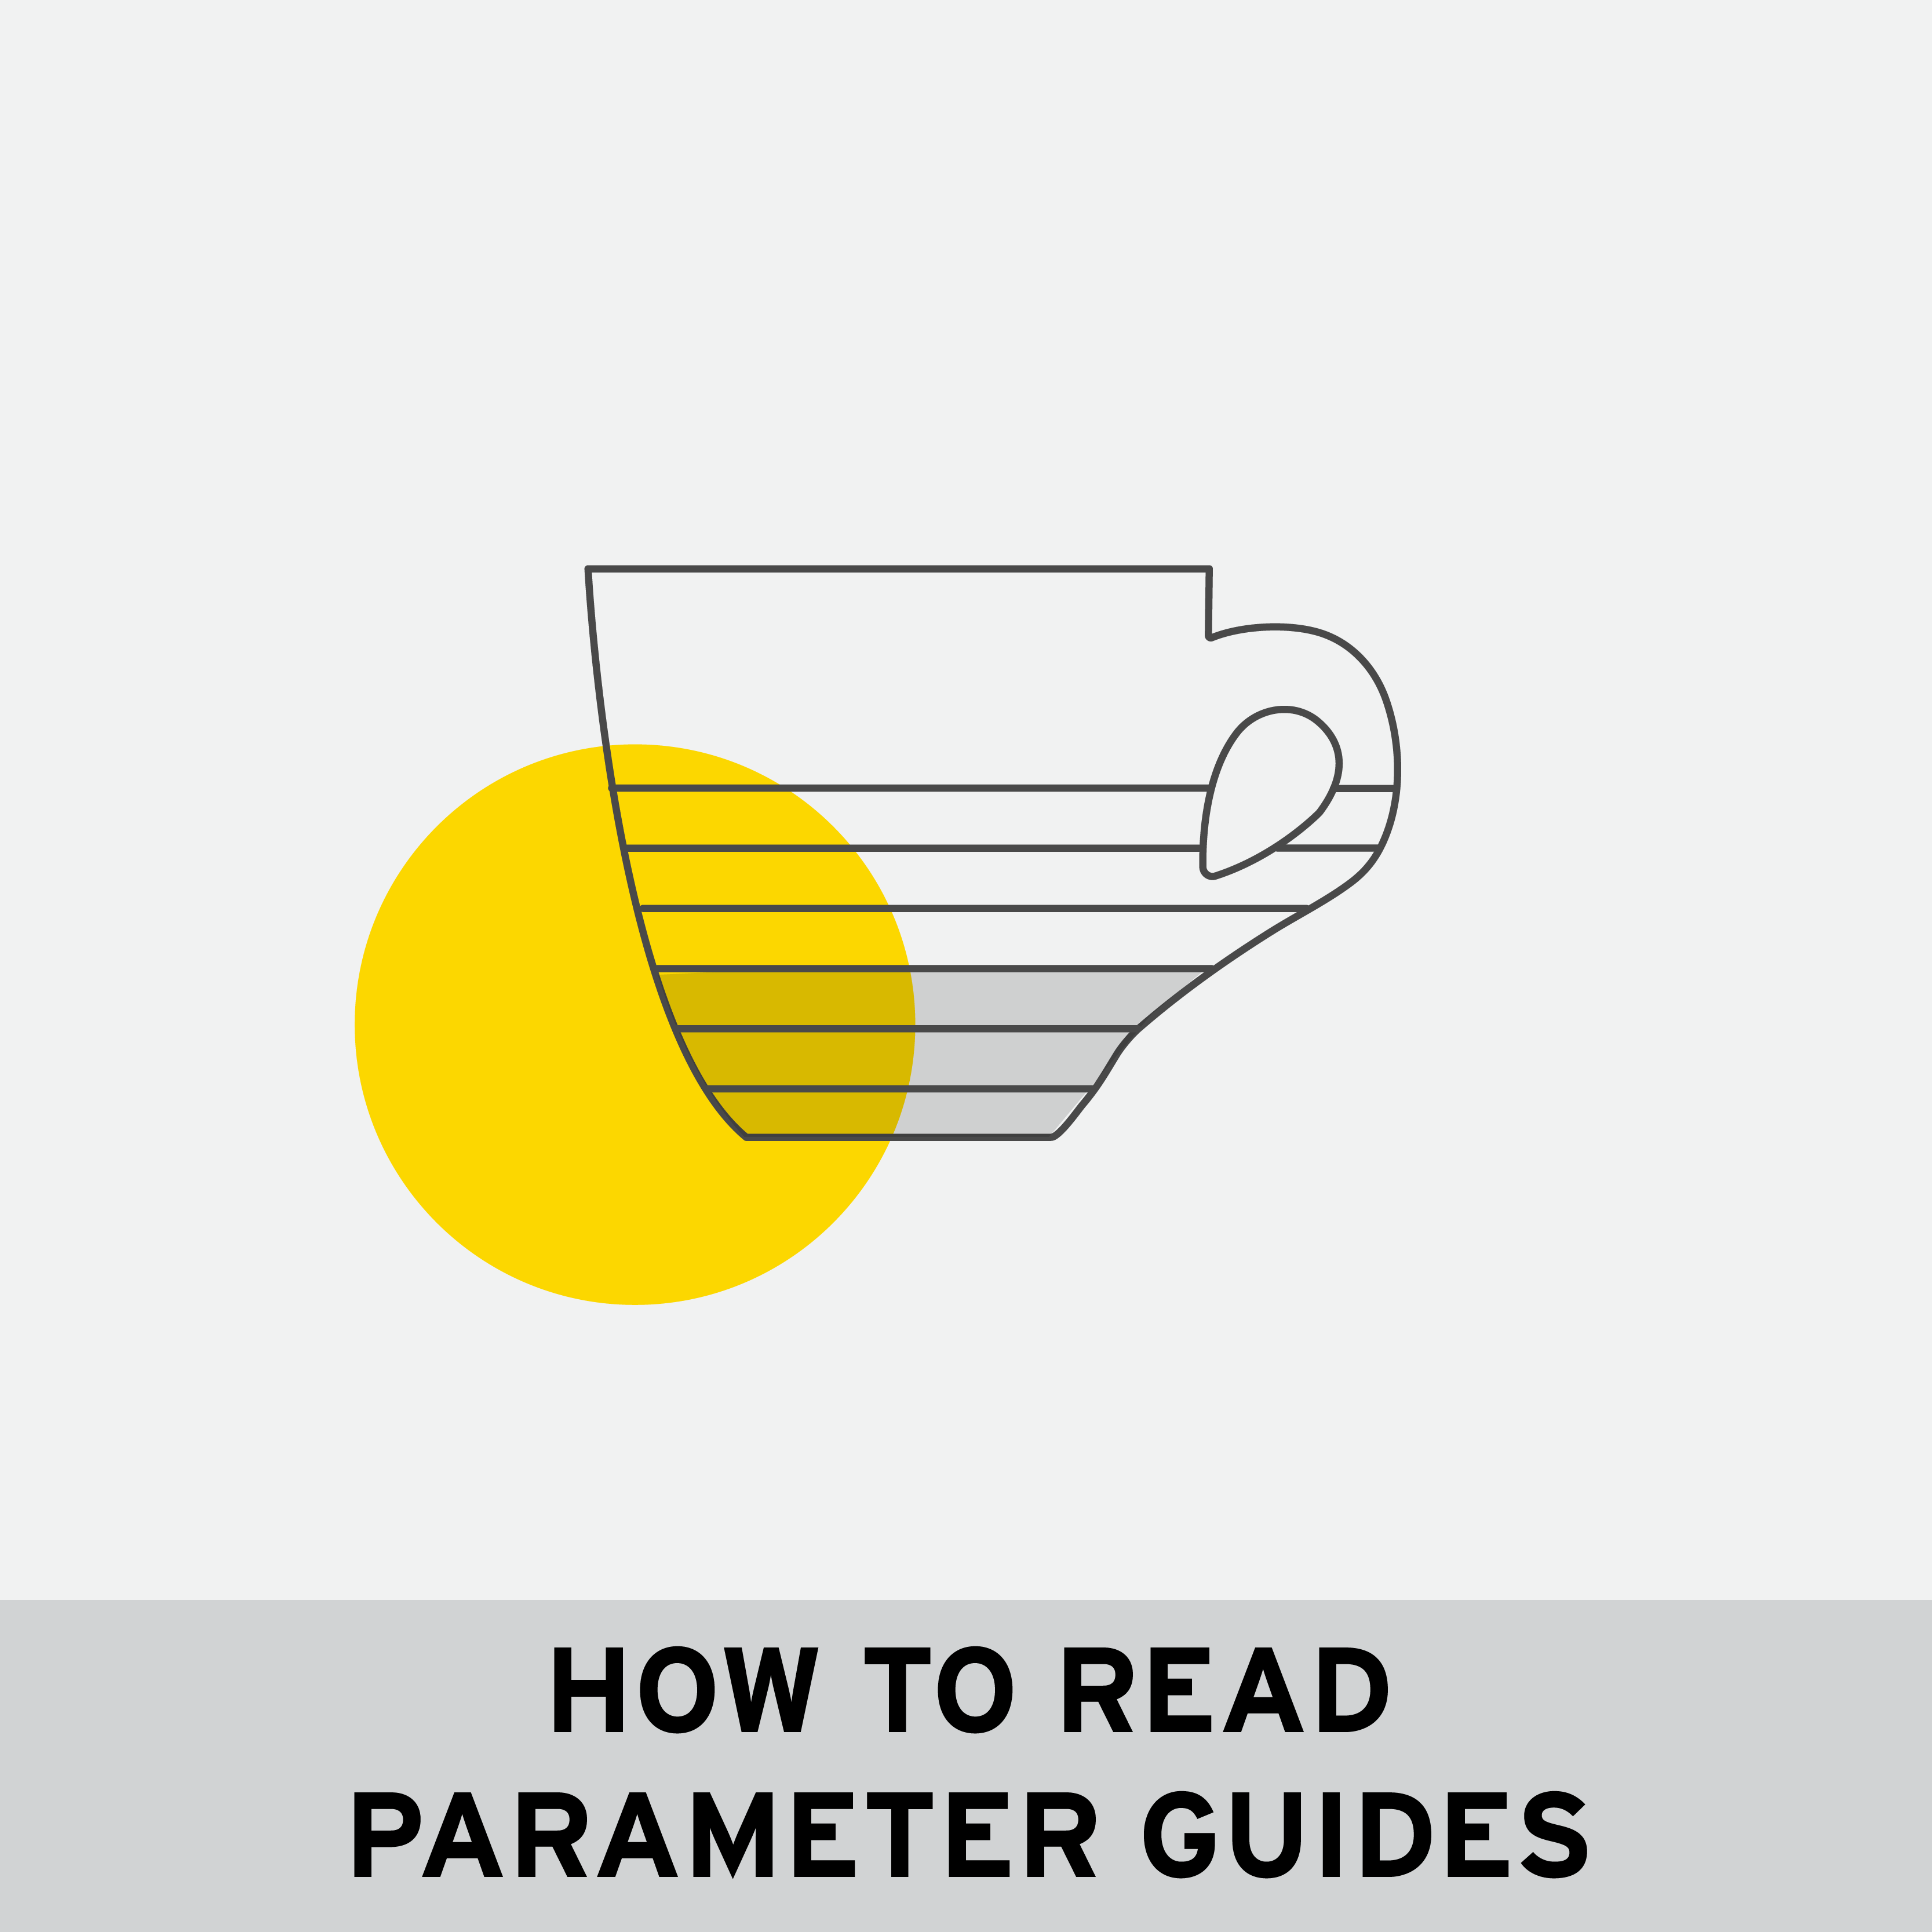 HOW TO READ PARAMETER GUIDES